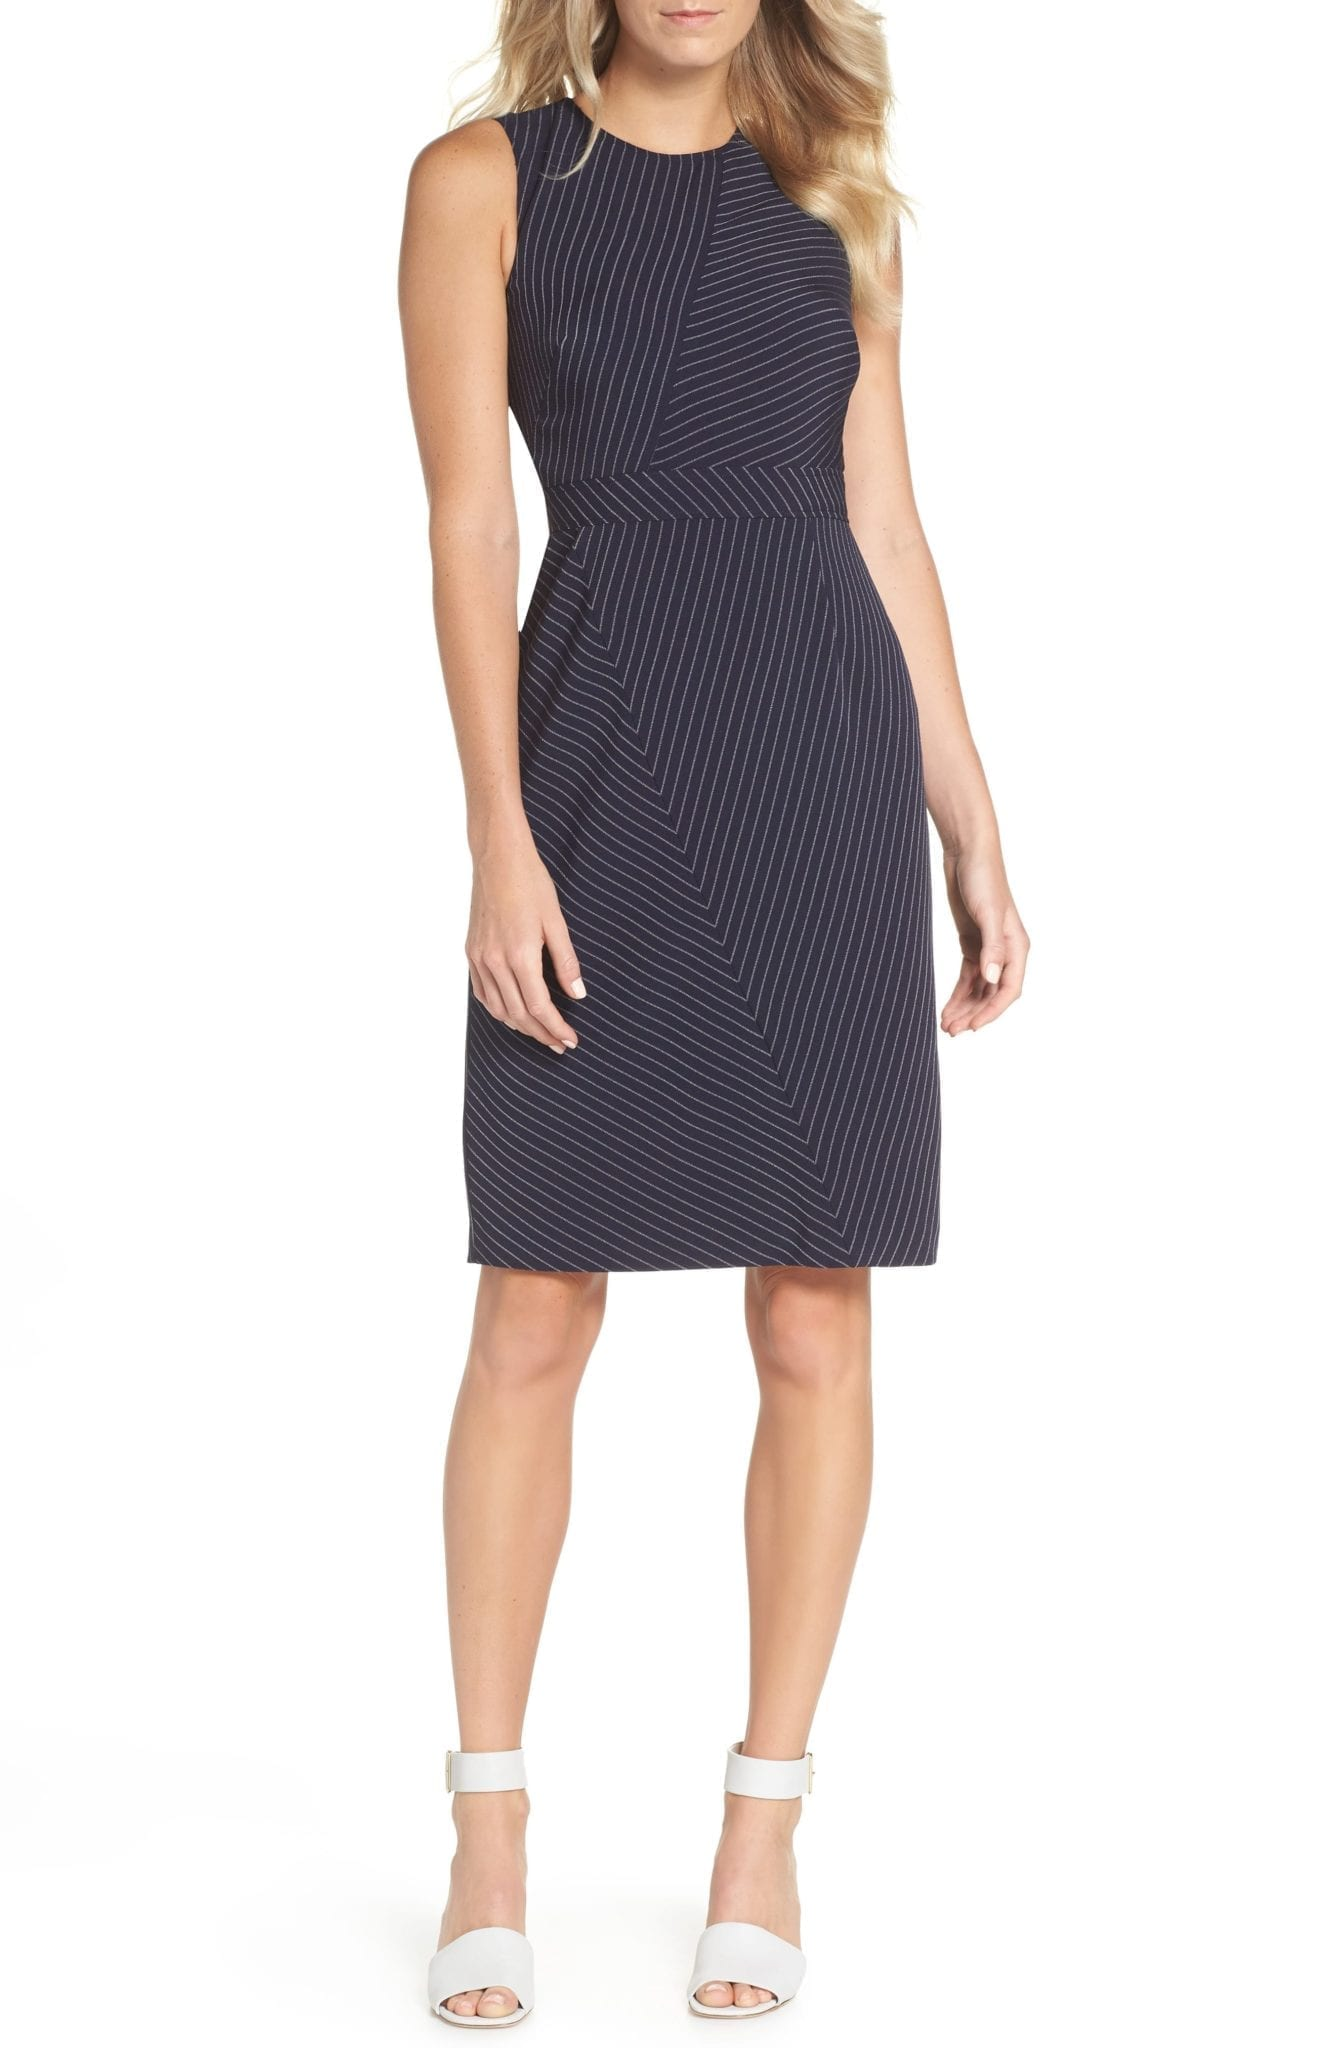 VINCE CAMUTO Stripe Sheath Navy Dress